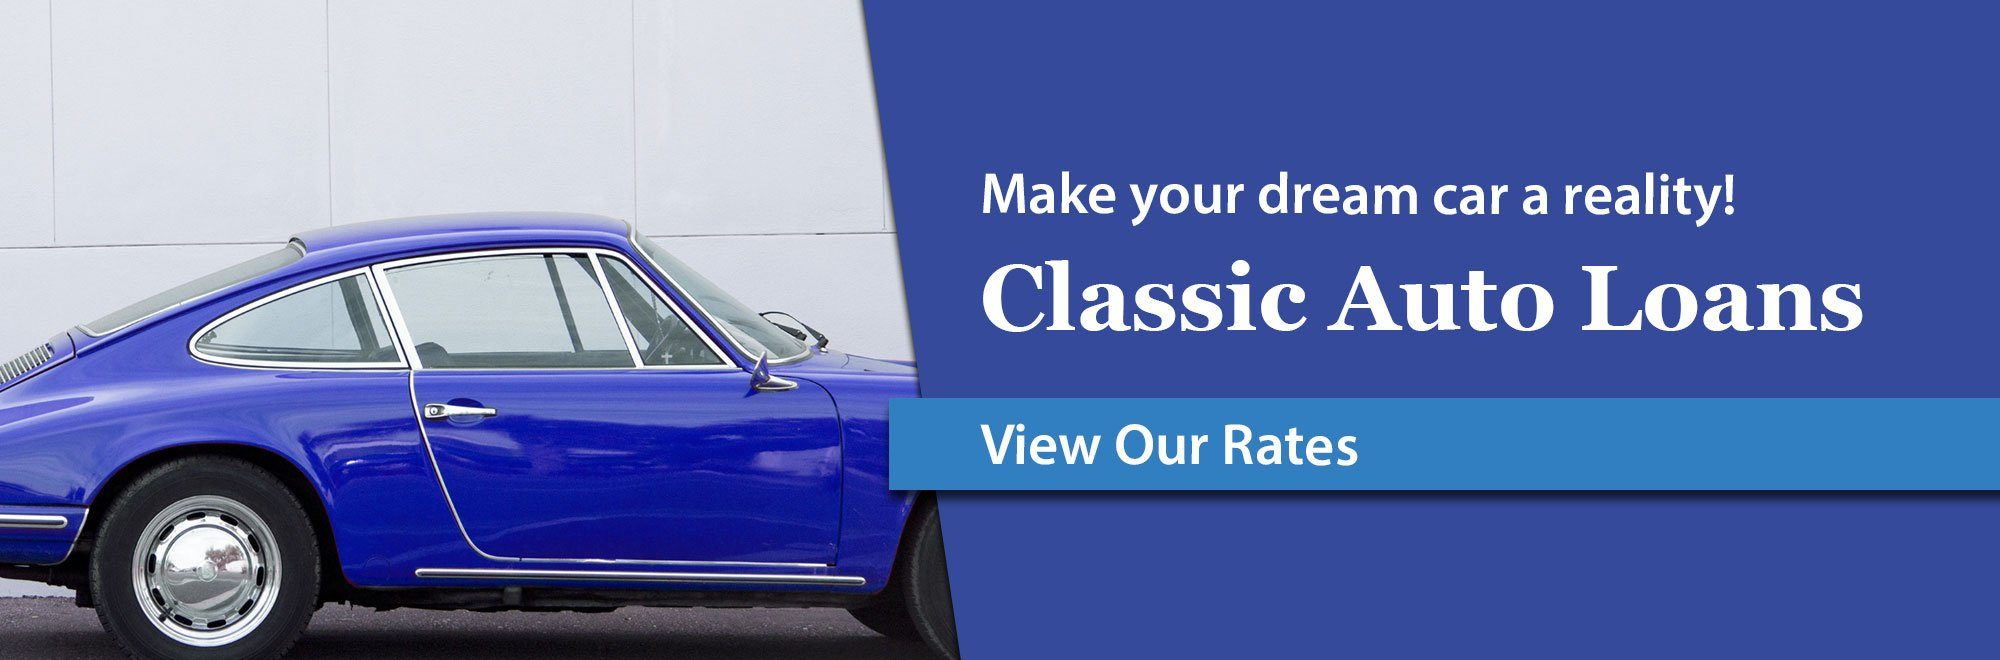 Make your dream car a reality. Classic Auto Loans. View our Rates